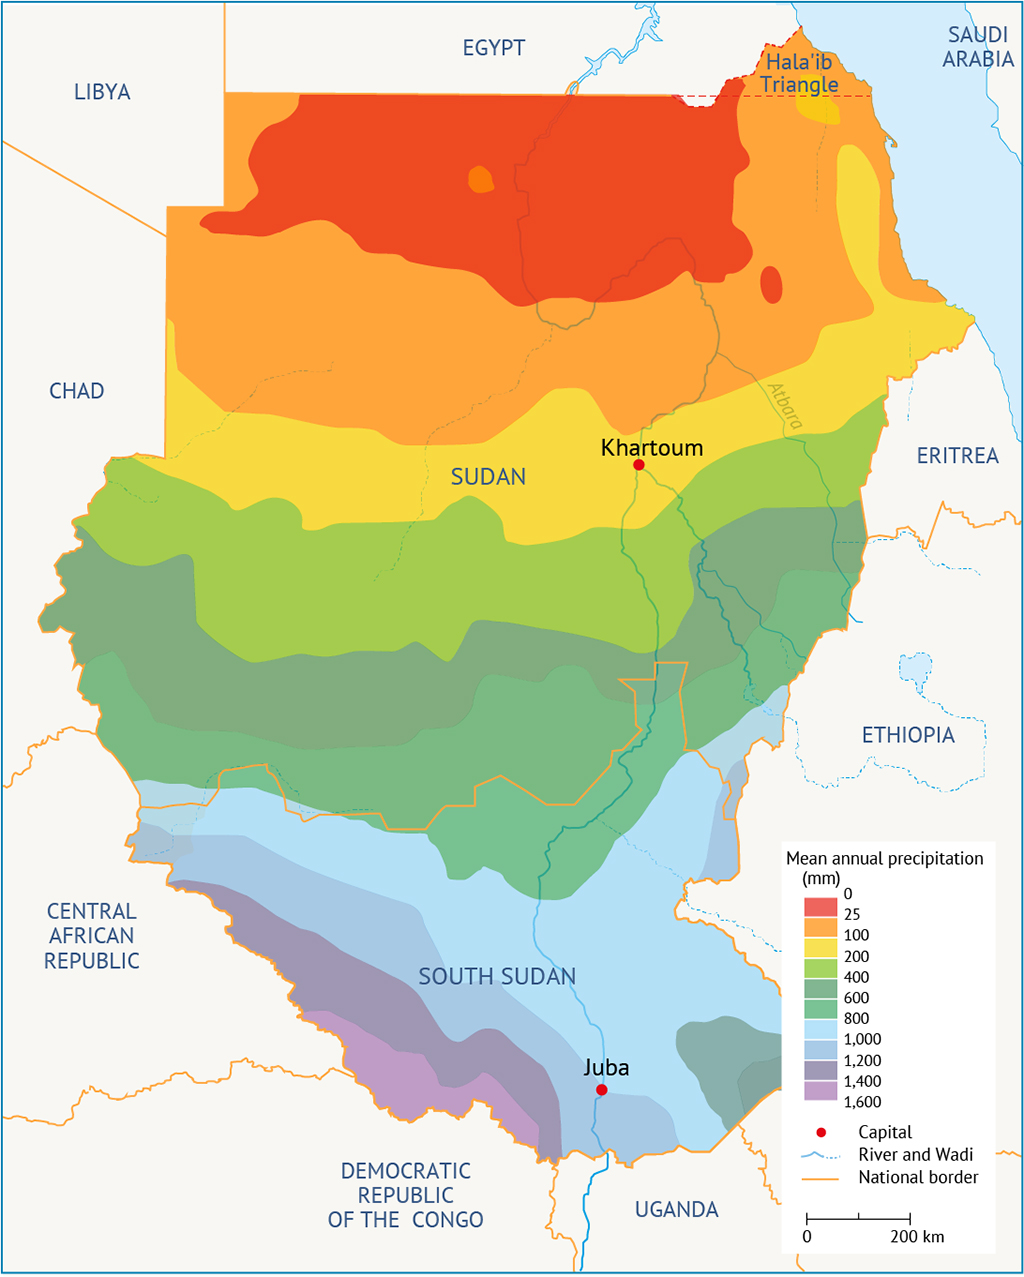 Average annual rainfall in South Sudan and Sudan